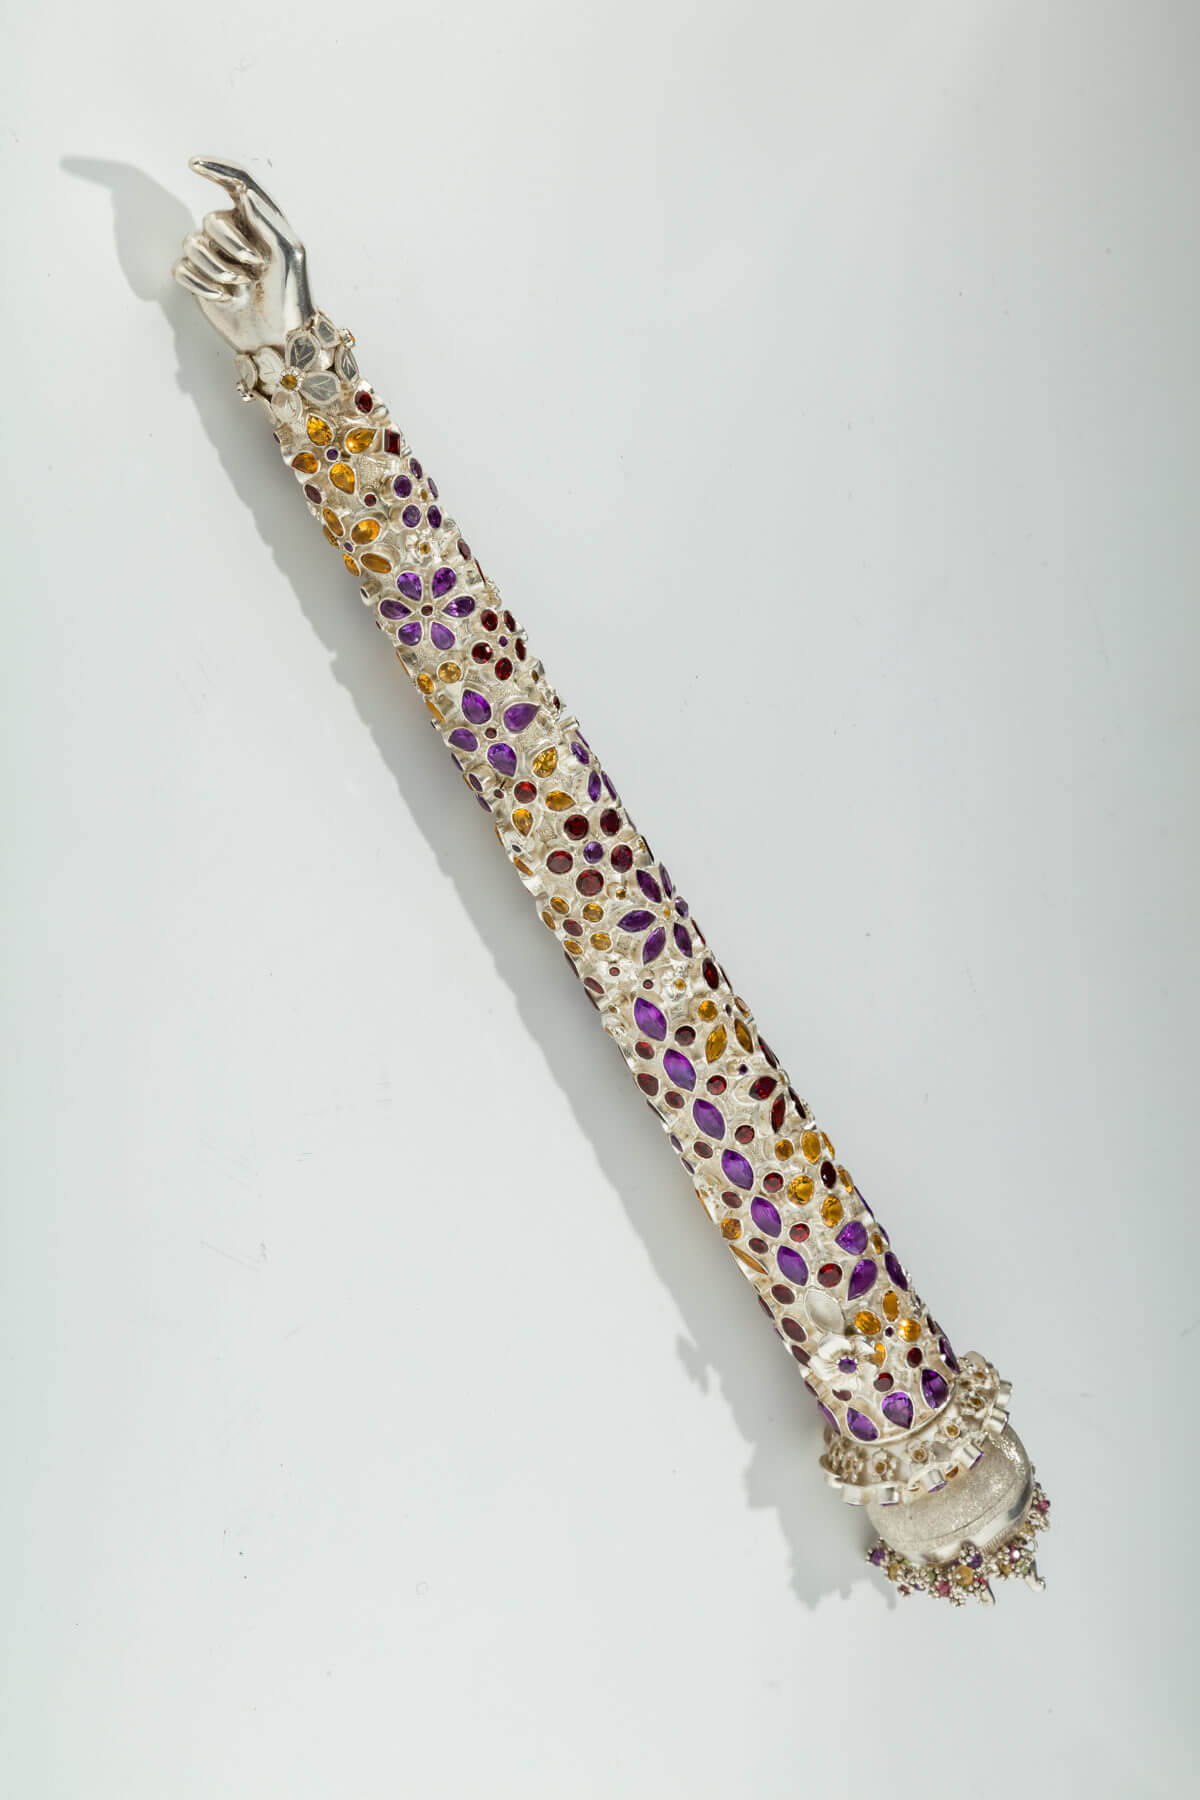 118. A Monumental Gem-Encrusted Torah Pointer by Dekel Aviv